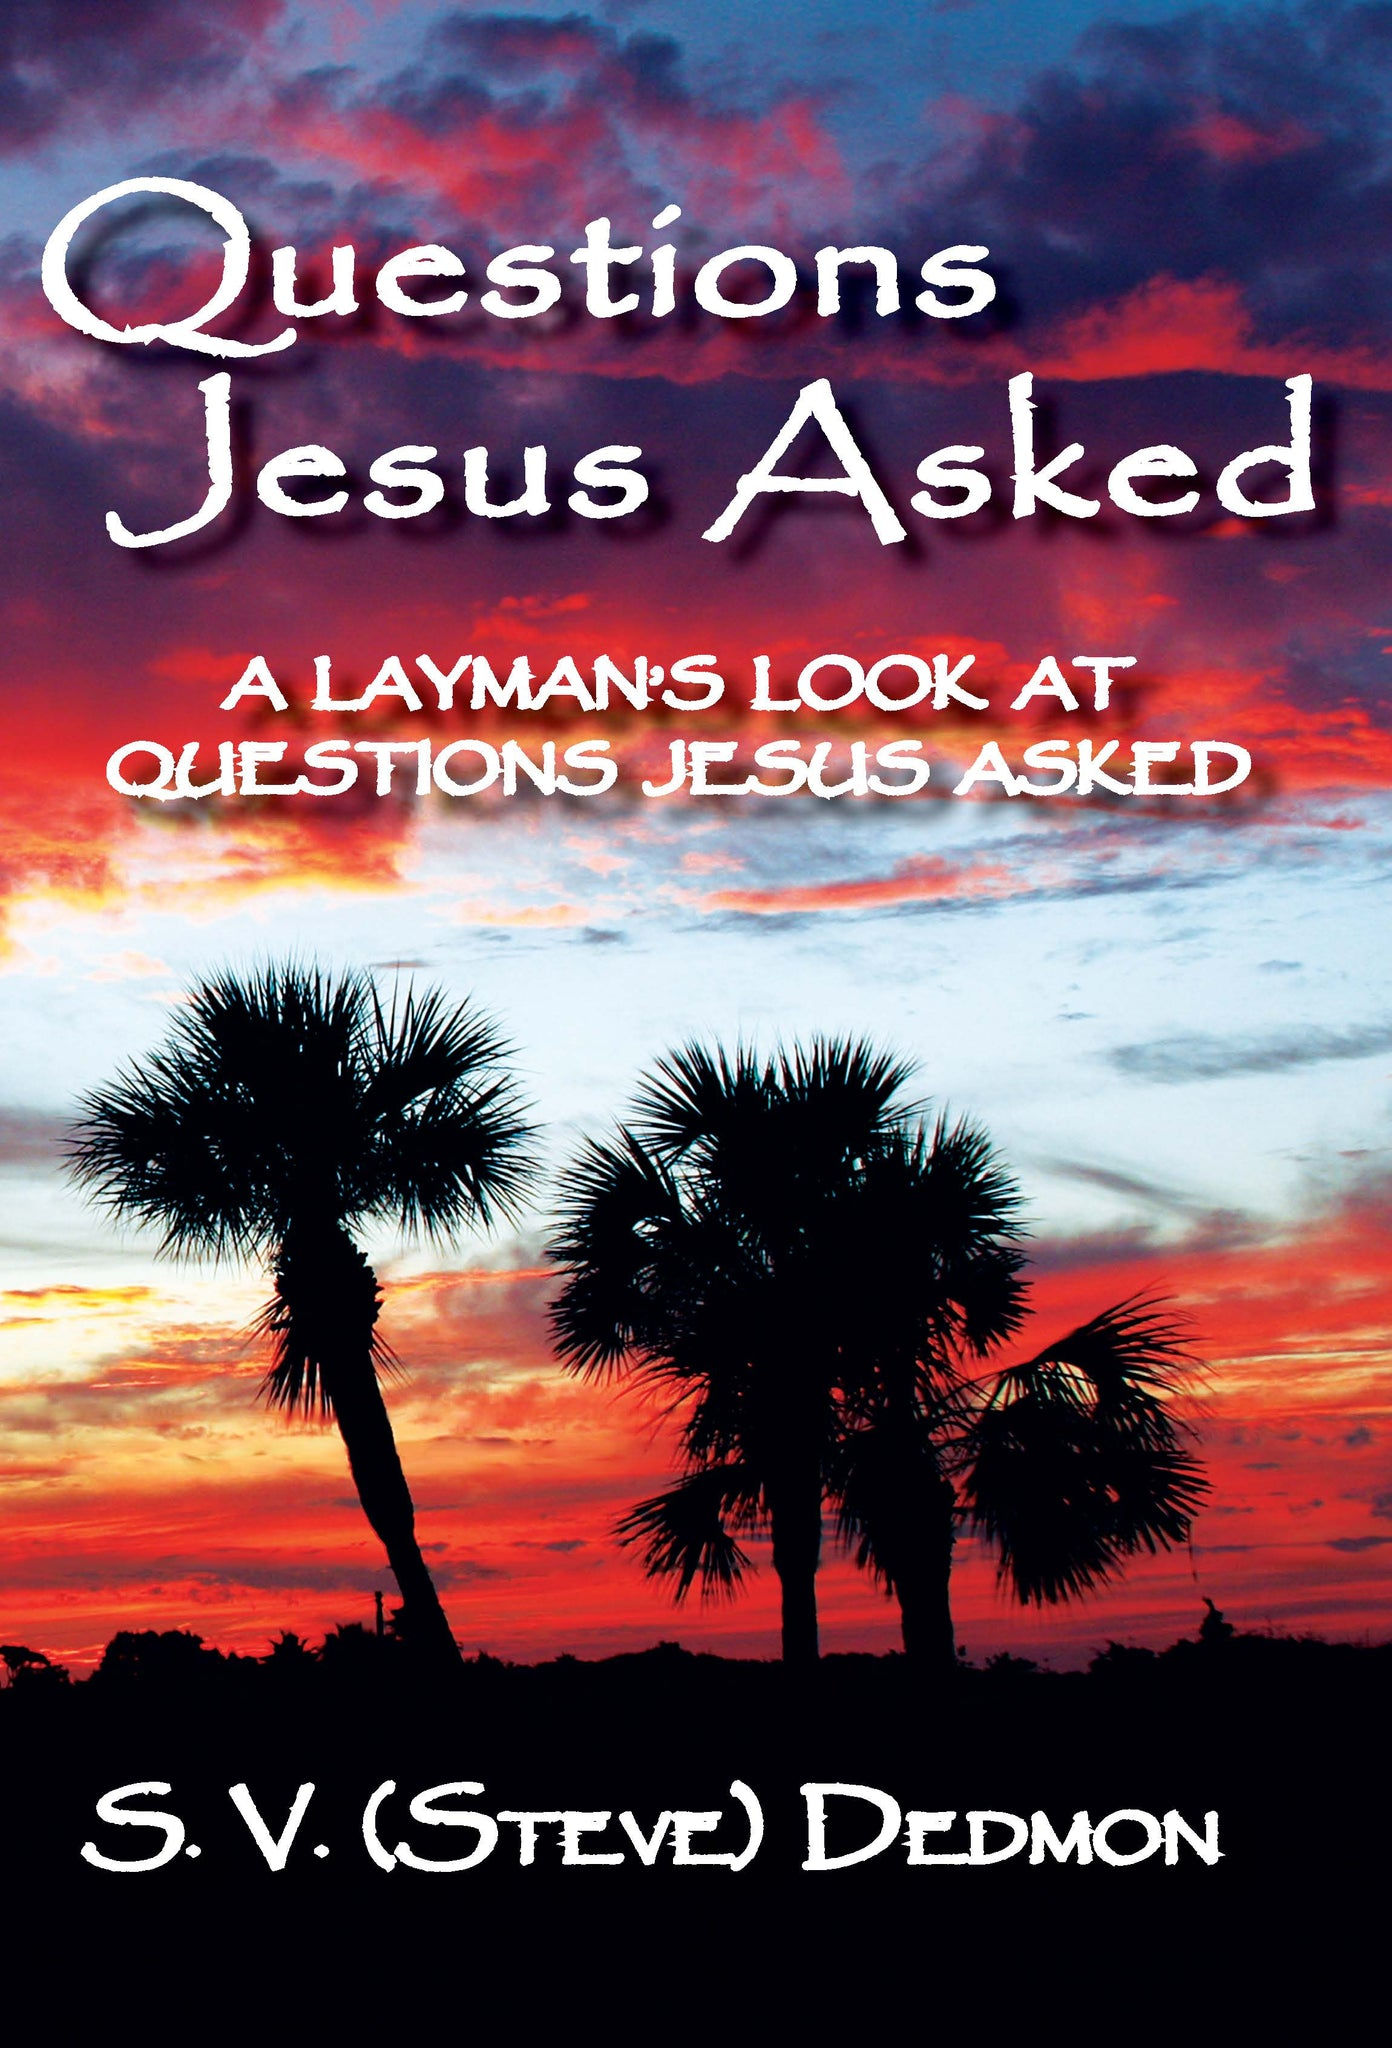 A Layman's Look at  Questions Jesus Asked By S. V. (Steve) Dedmon